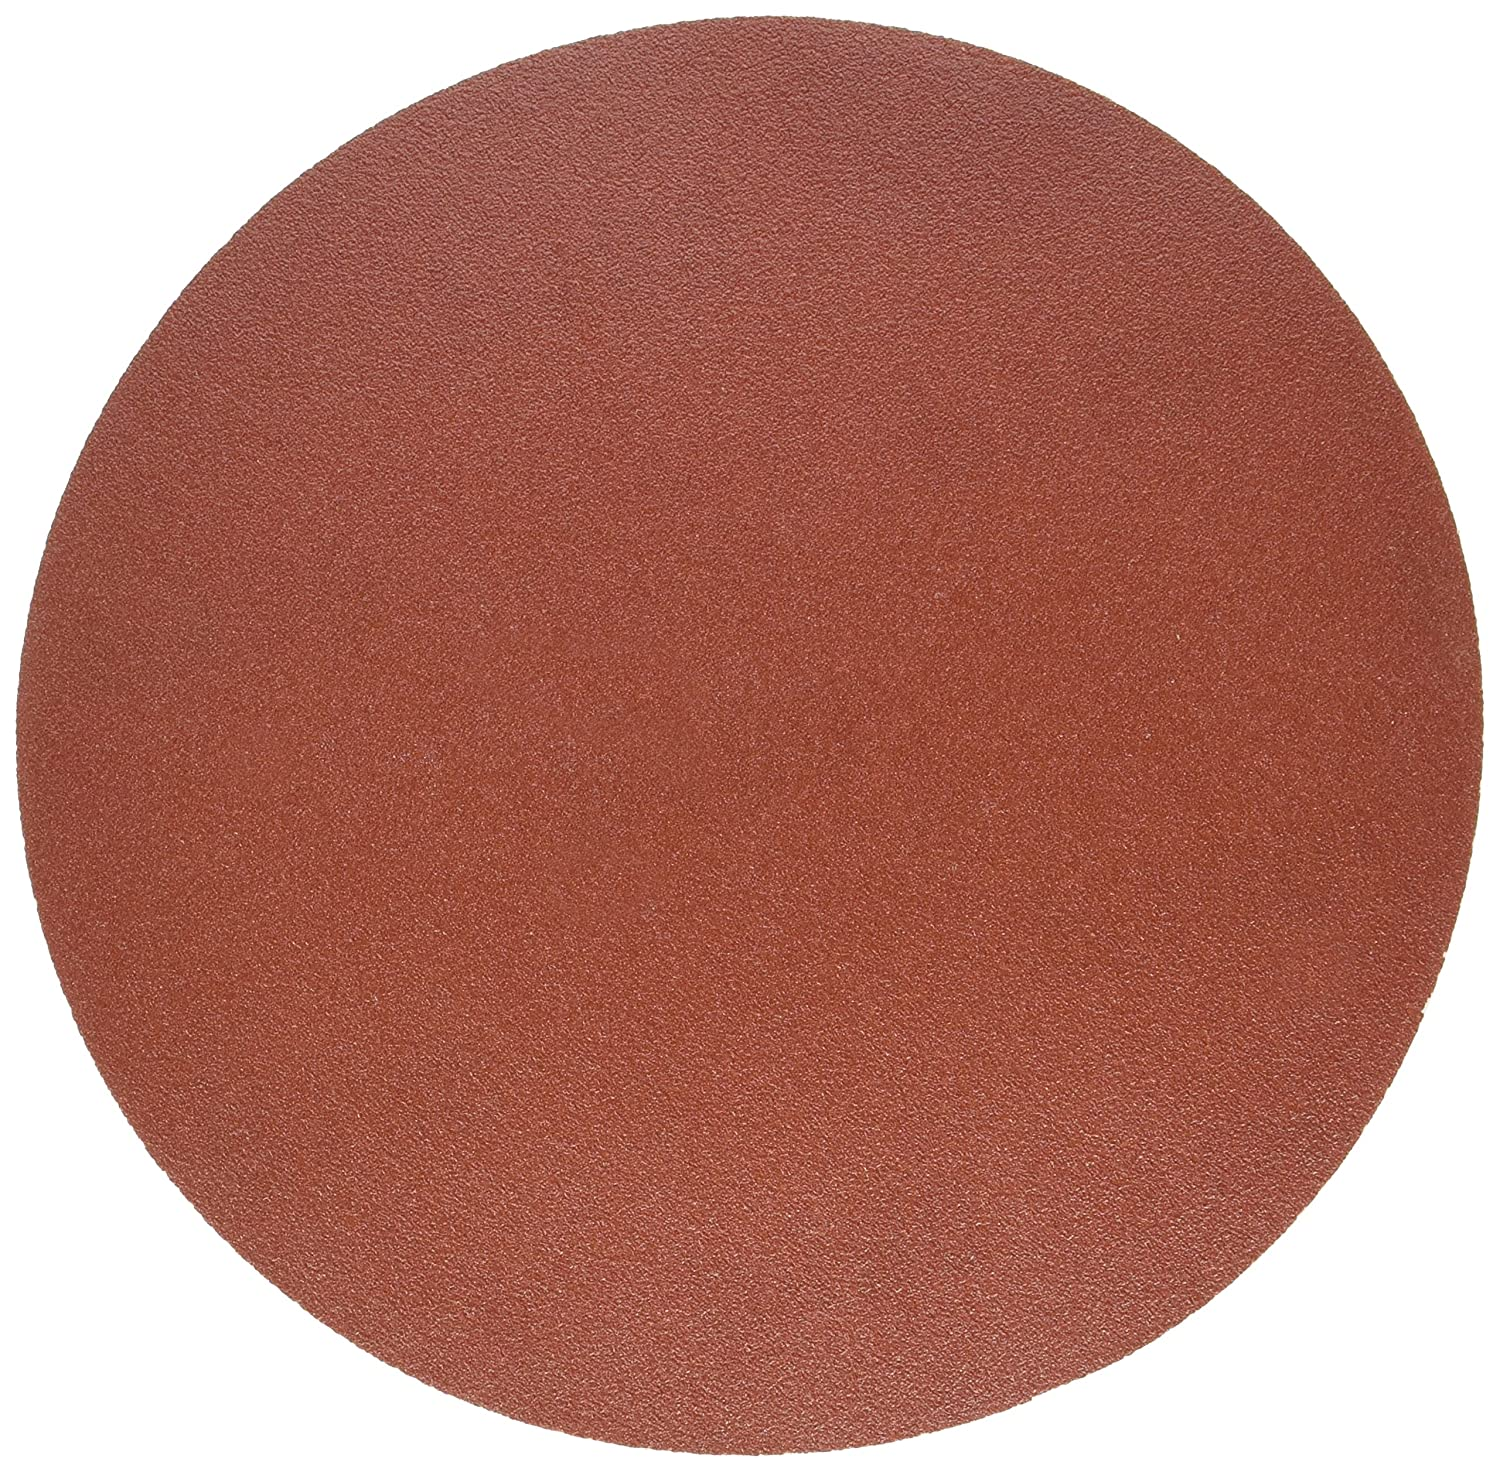 PORTER-CABLE 726001825 6-Inch 180g No Hole Sanding Disc 25-pack